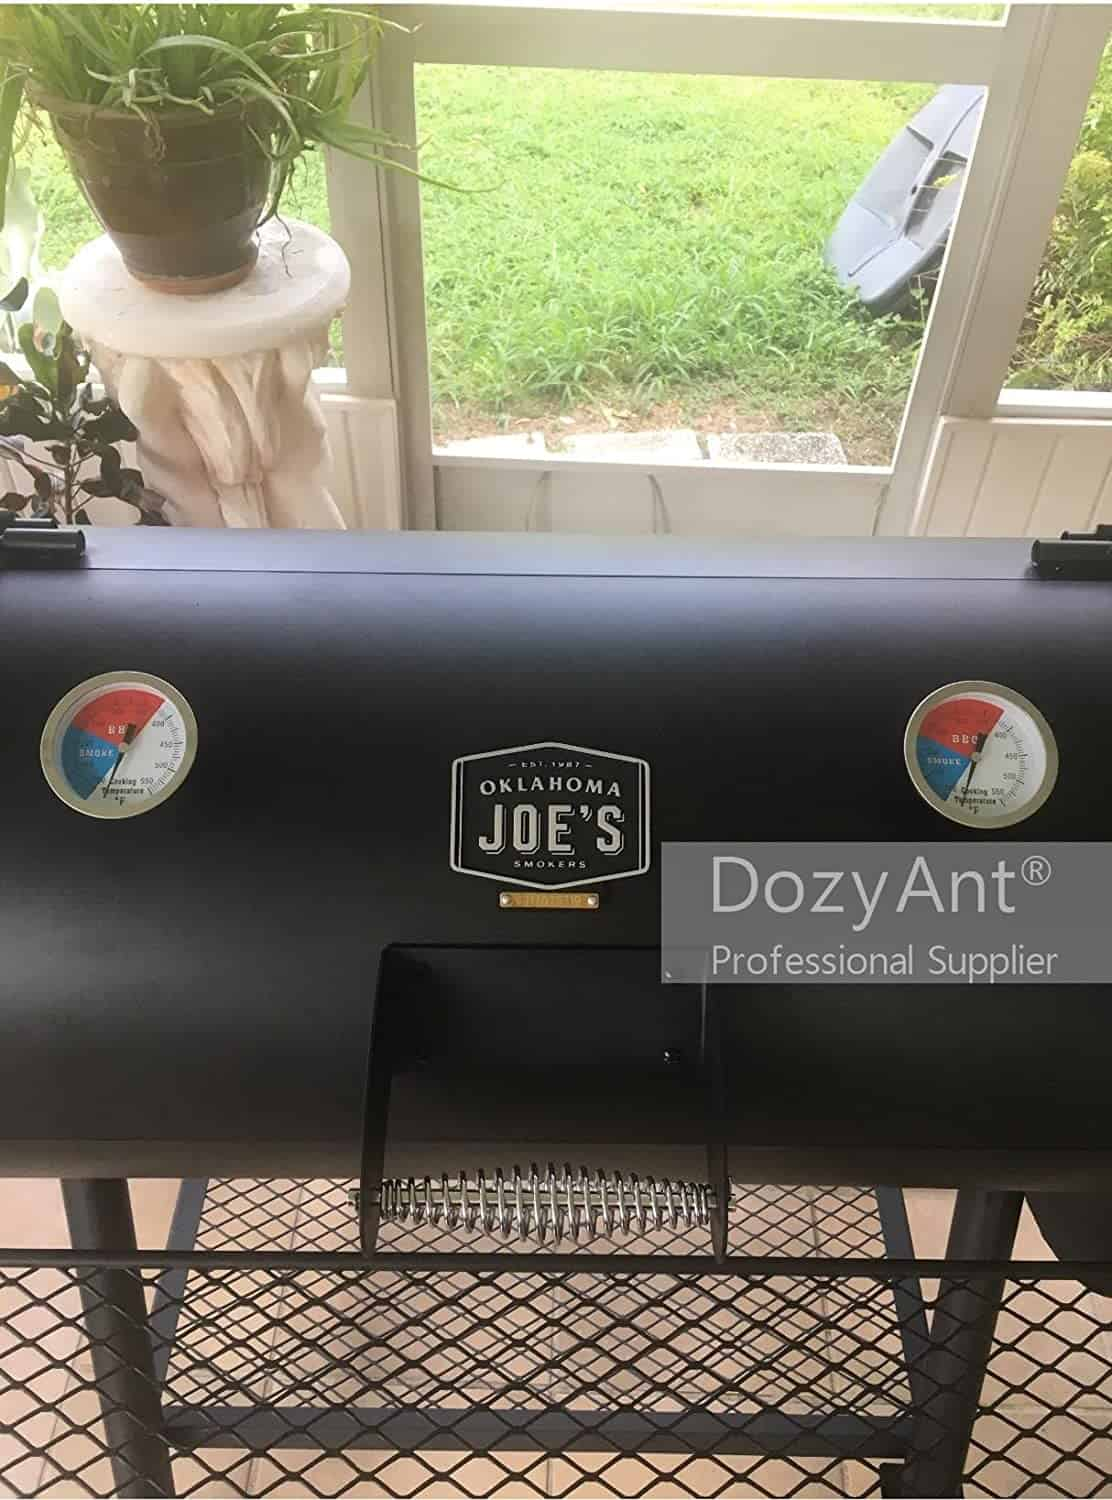 Best Analog Barbecue Smoker Thermometer: Dozyant